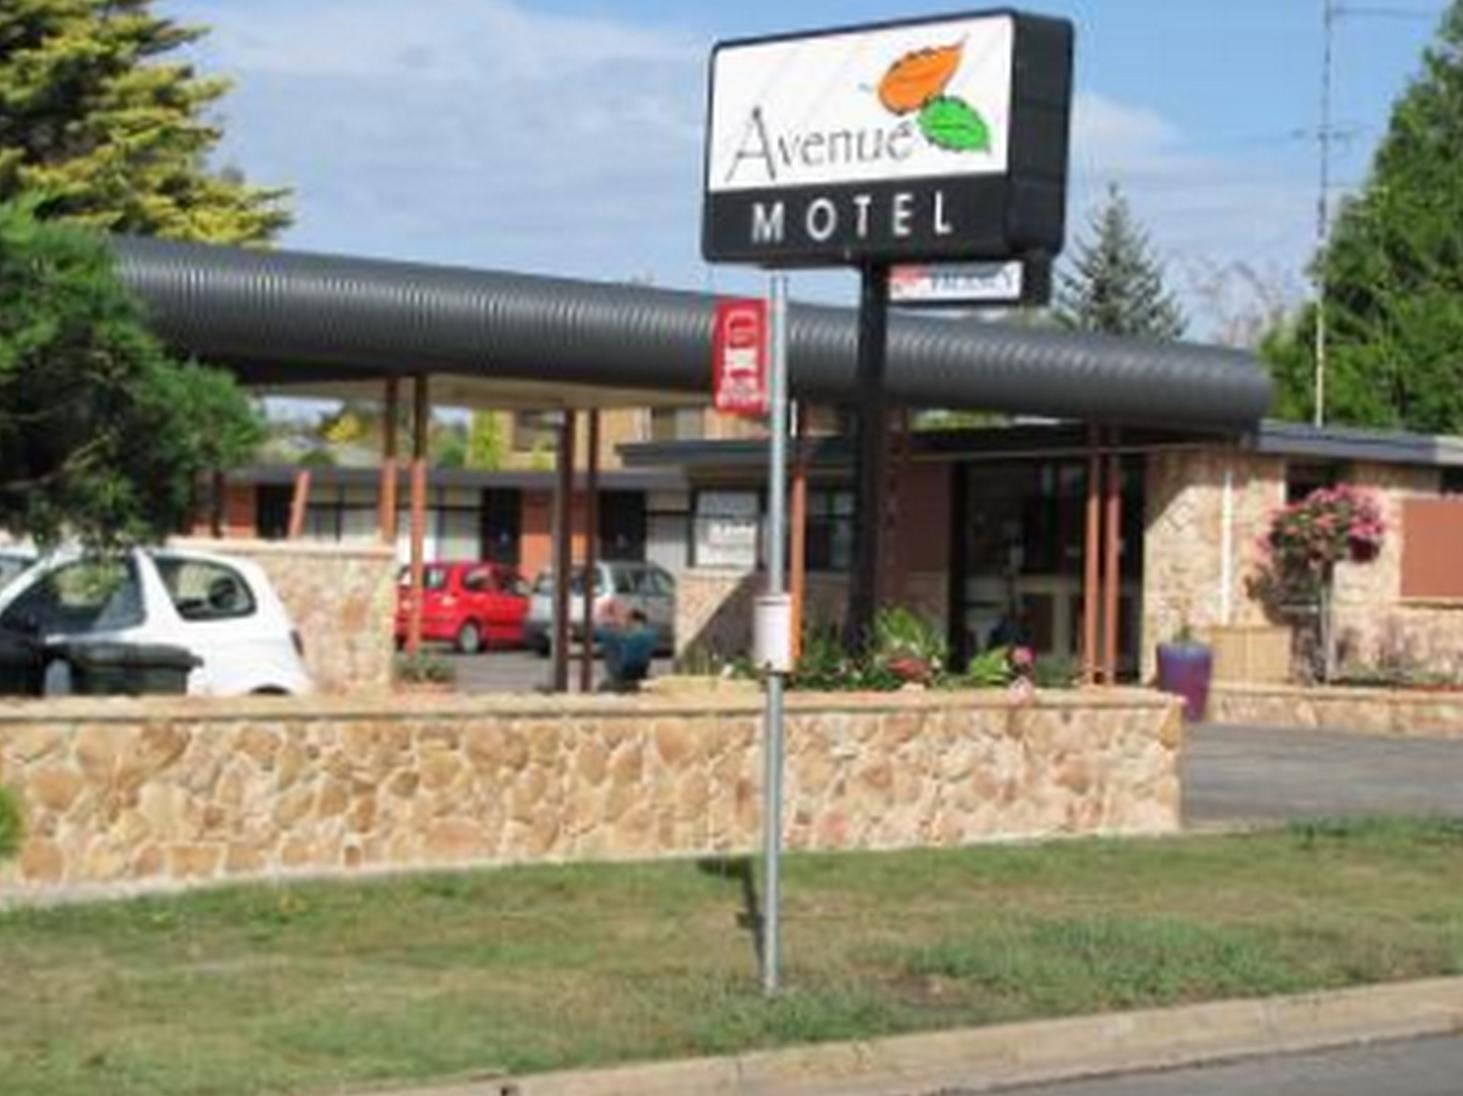 Avenue Motel, Ballarat  - Inner North